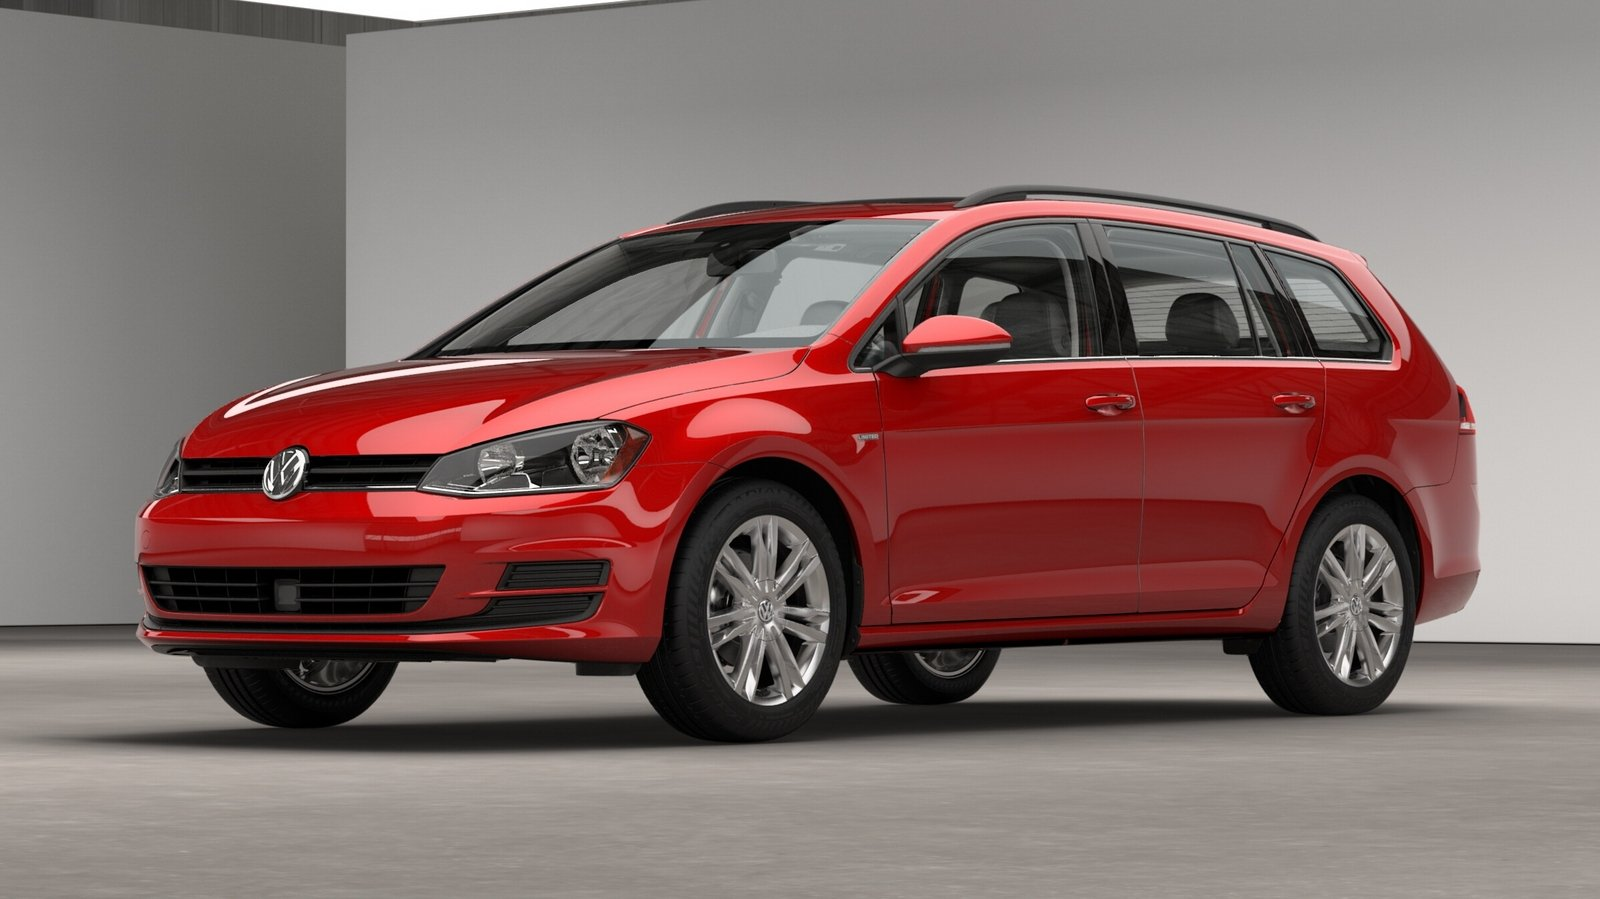 2016 volkswagen golf sportwagen limited edition review top speed. Black Bedroom Furniture Sets. Home Design Ideas